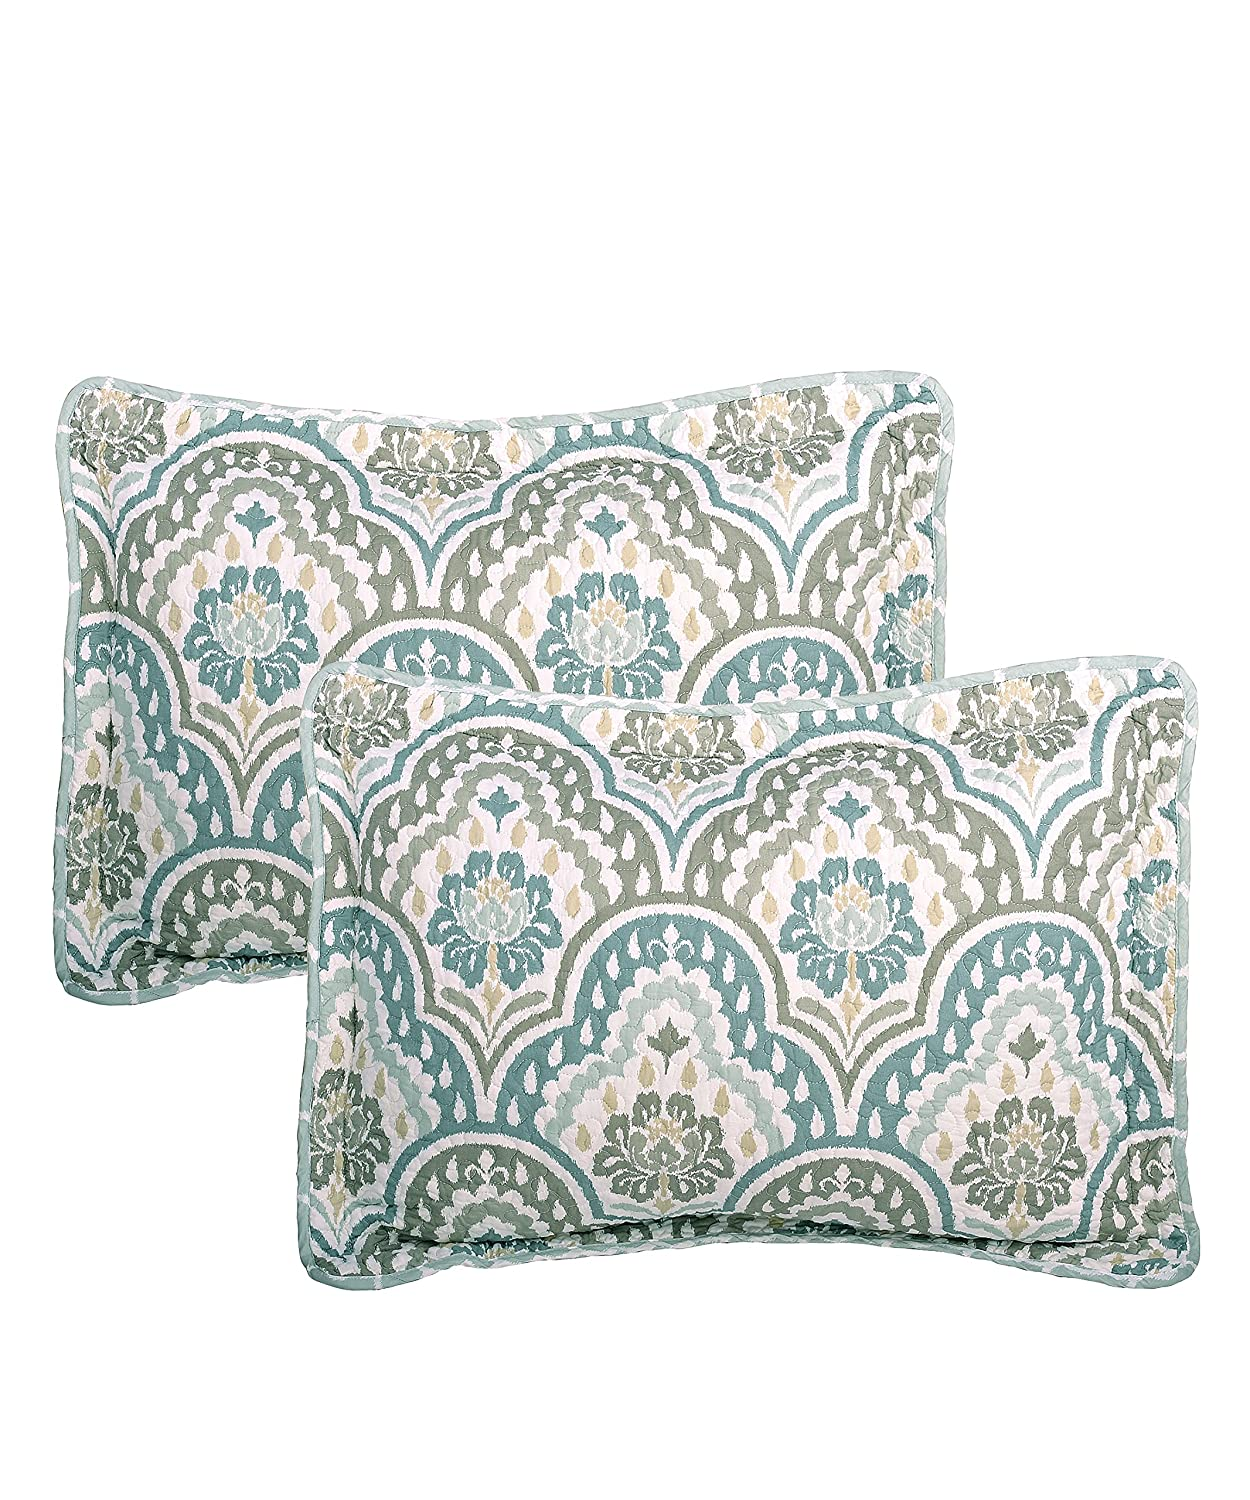 Queen Home Soft Things BNFPMQ5QTI Serenta Tivoli Ikat Design 5 Piece Teal Aqua Printed Prewashed Quilted Coverlet Bedspread Bed cover Summer Quilt Blanket with Cotton Polyester Filled Embroidery Pillow Set